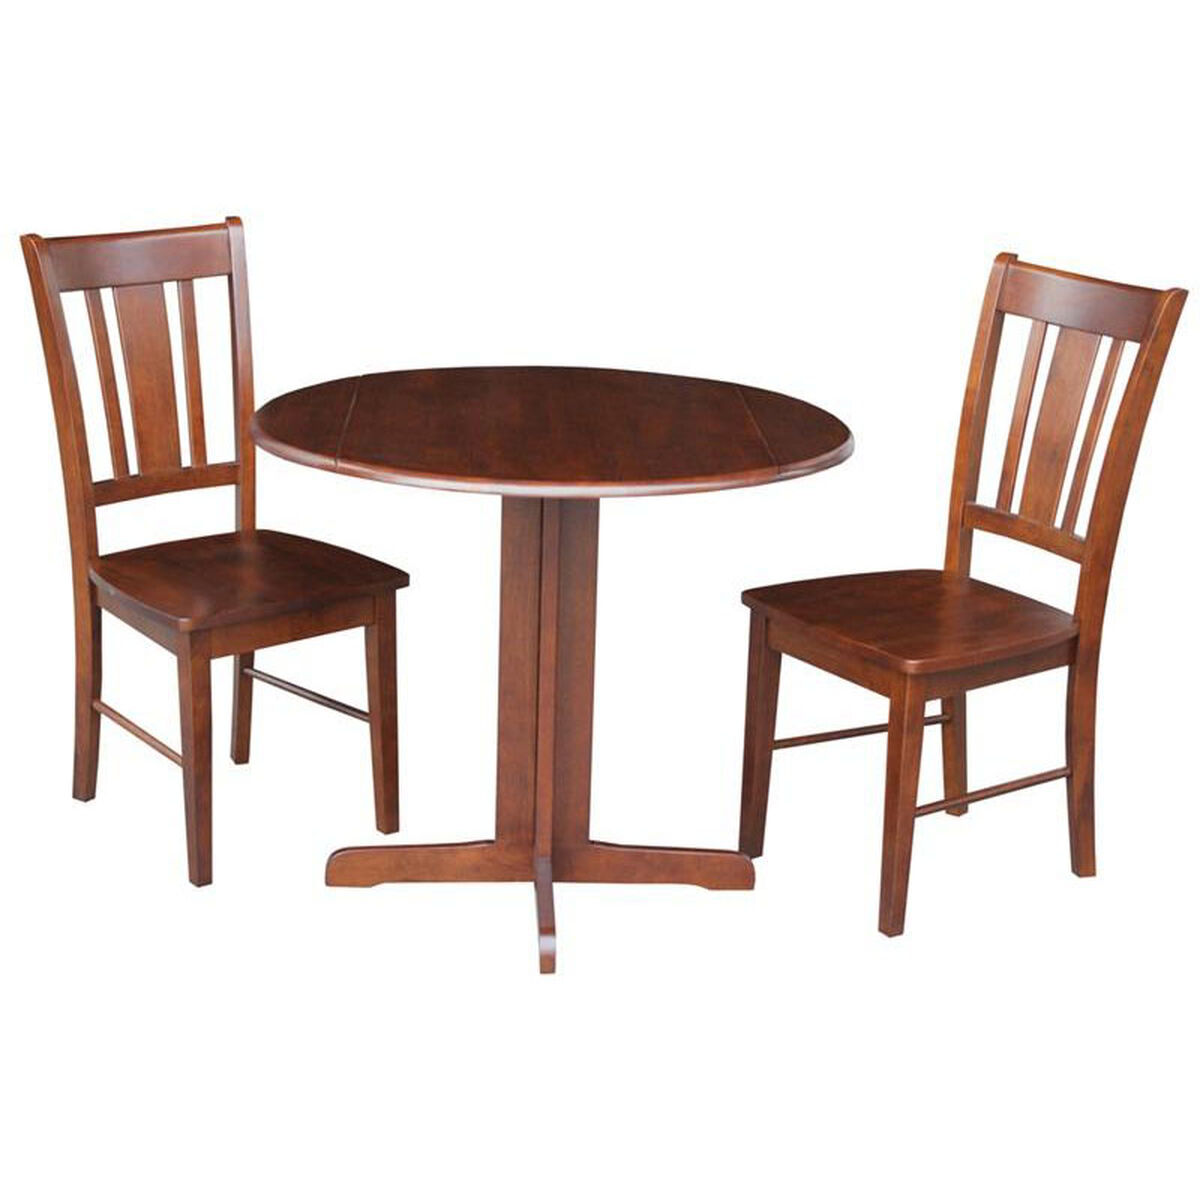 International concepts solid wood 3 piece 36 39 39 diameter for Solid wood round dining table with leaf